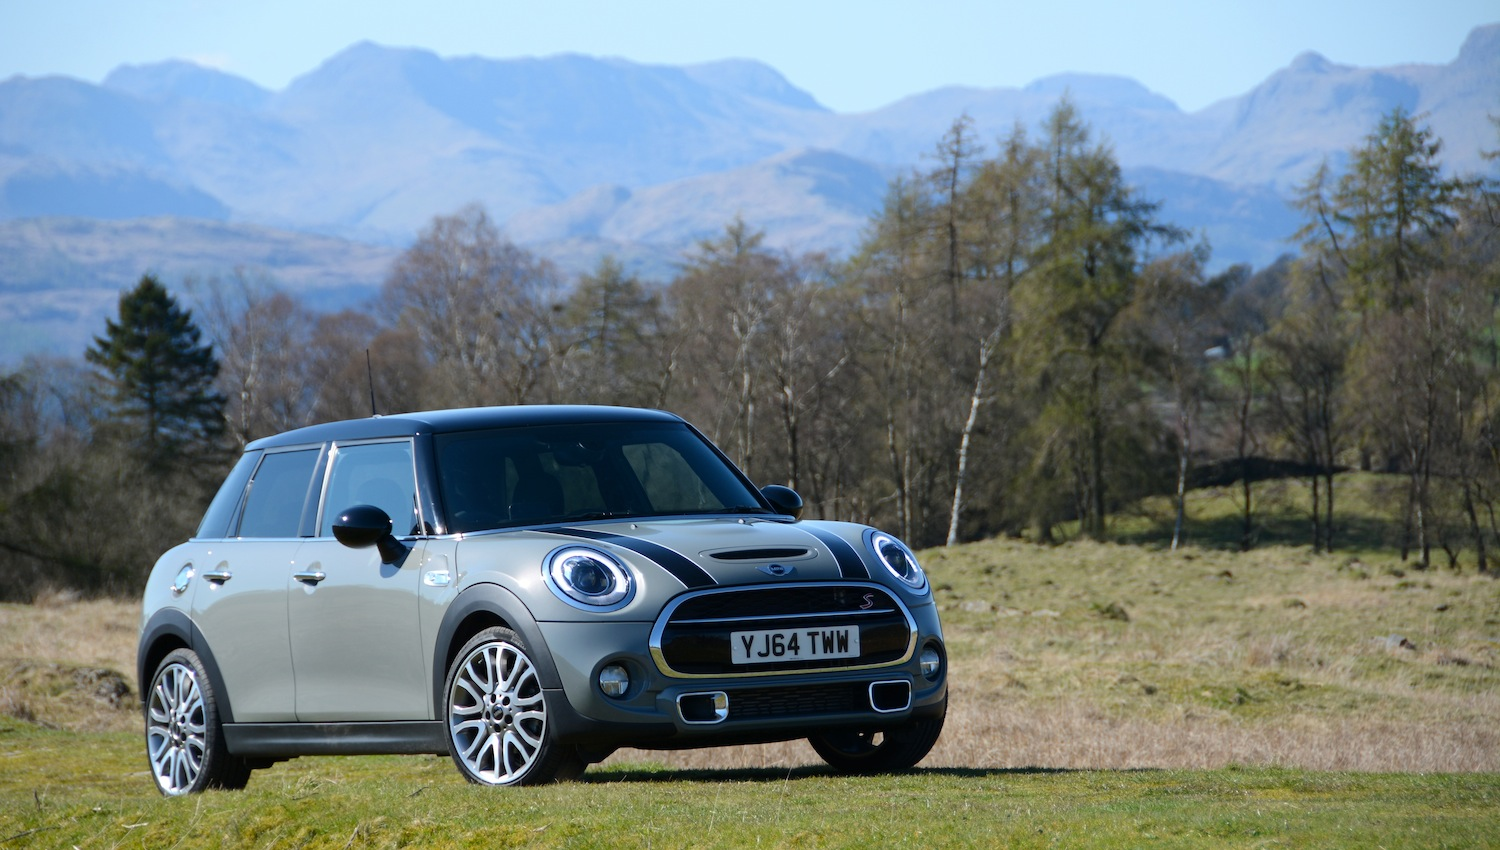 MINI Cooper SD 5-door Hatch & MINI Cooper SD 5-door Hatch 2.0 Review - GreenCarGuide.co.uk